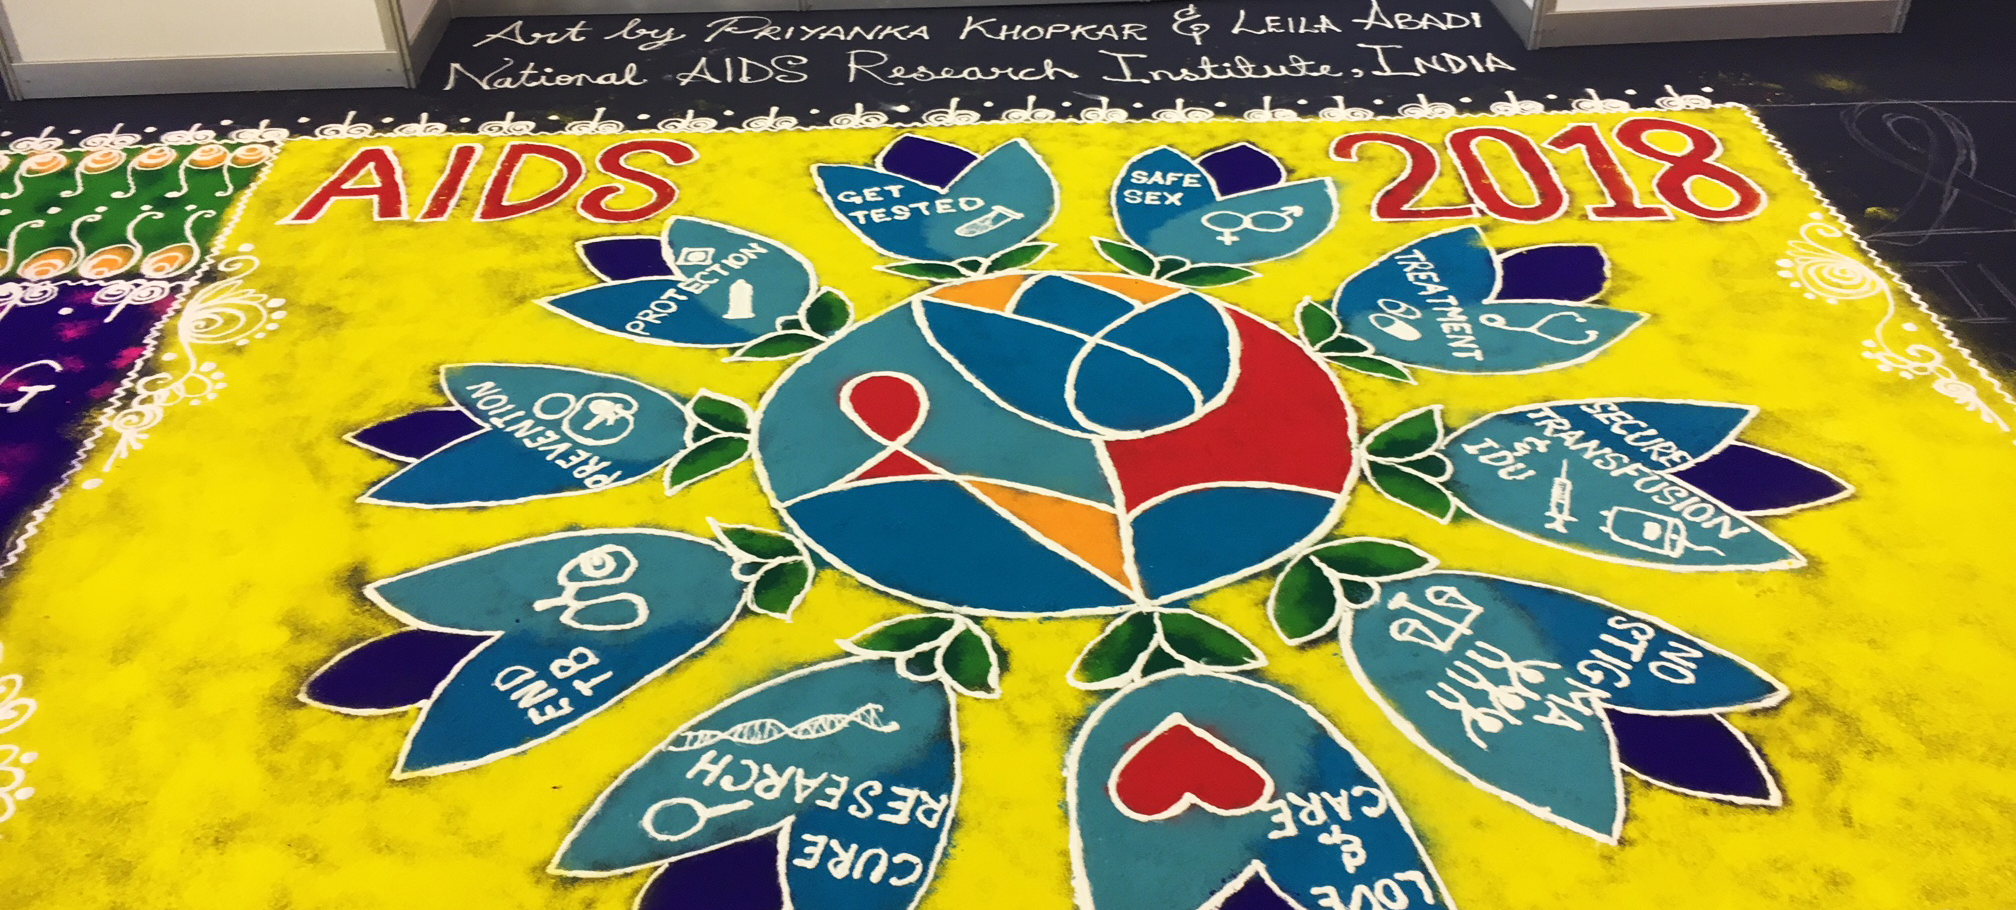 Mandala at AIDS 2018